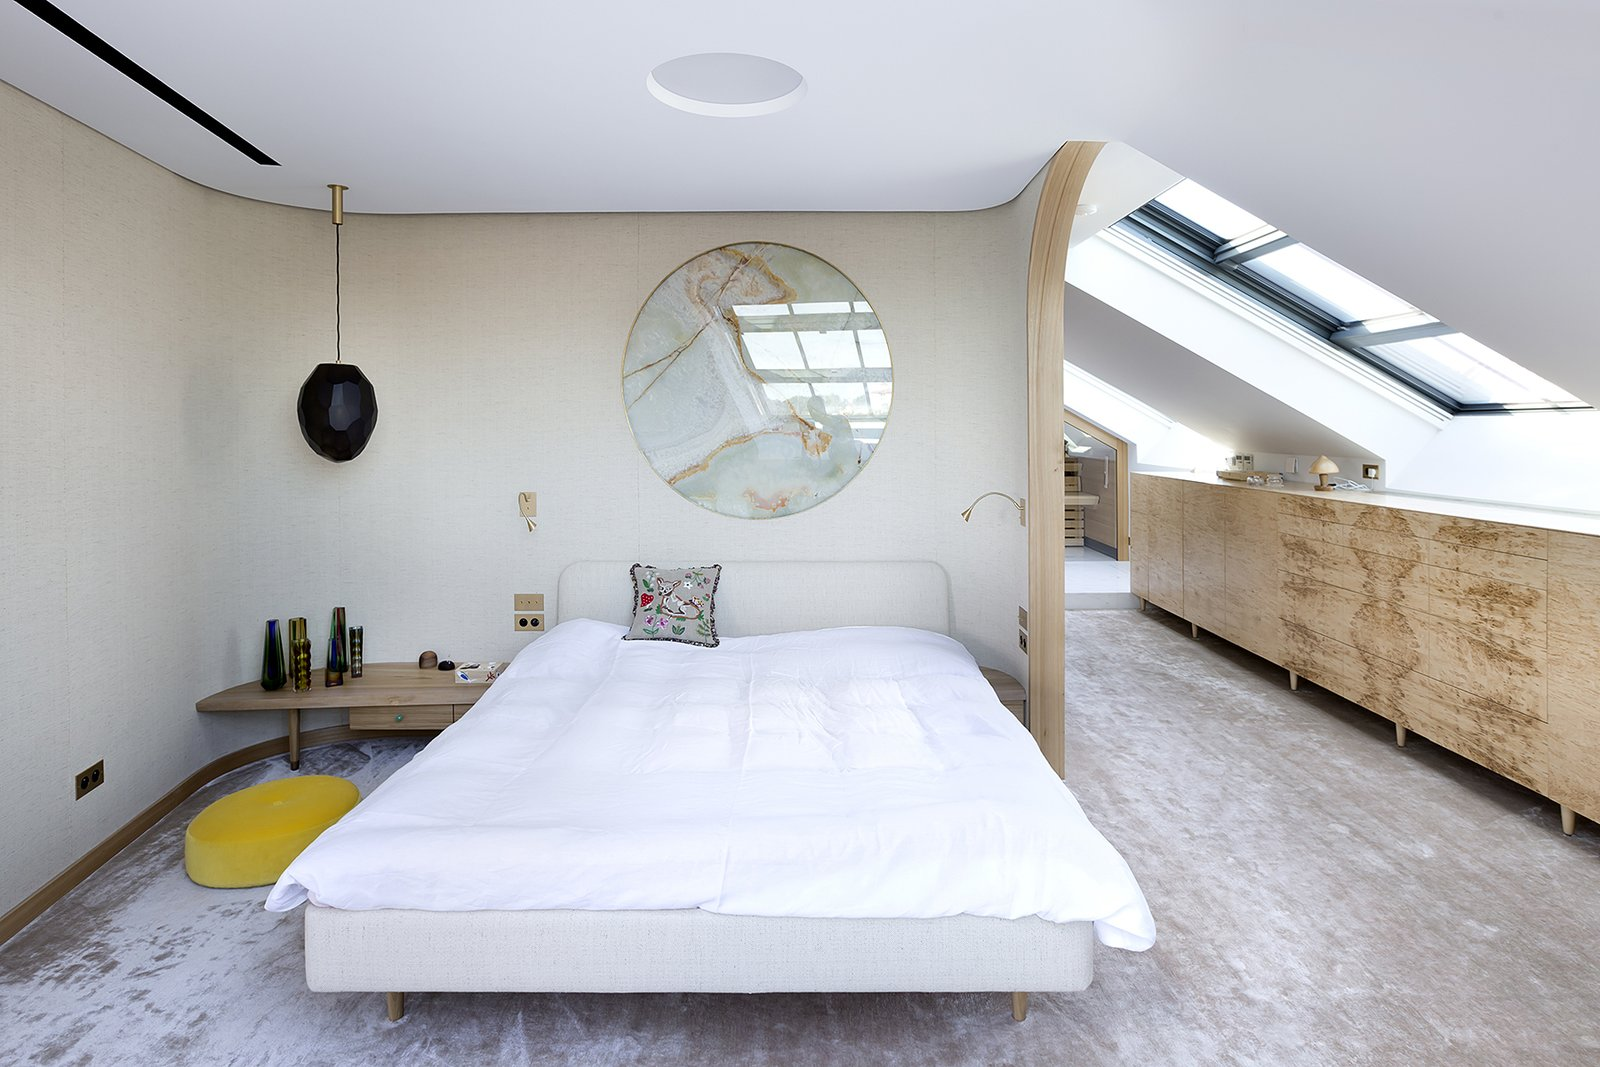 Bedroom, Pendant Lighting, Wall Lighting, Bed, and Night Stands  Photo 4 of 18 in A Dreamy Loft in Prague With Castle Views and an Onyx Moon